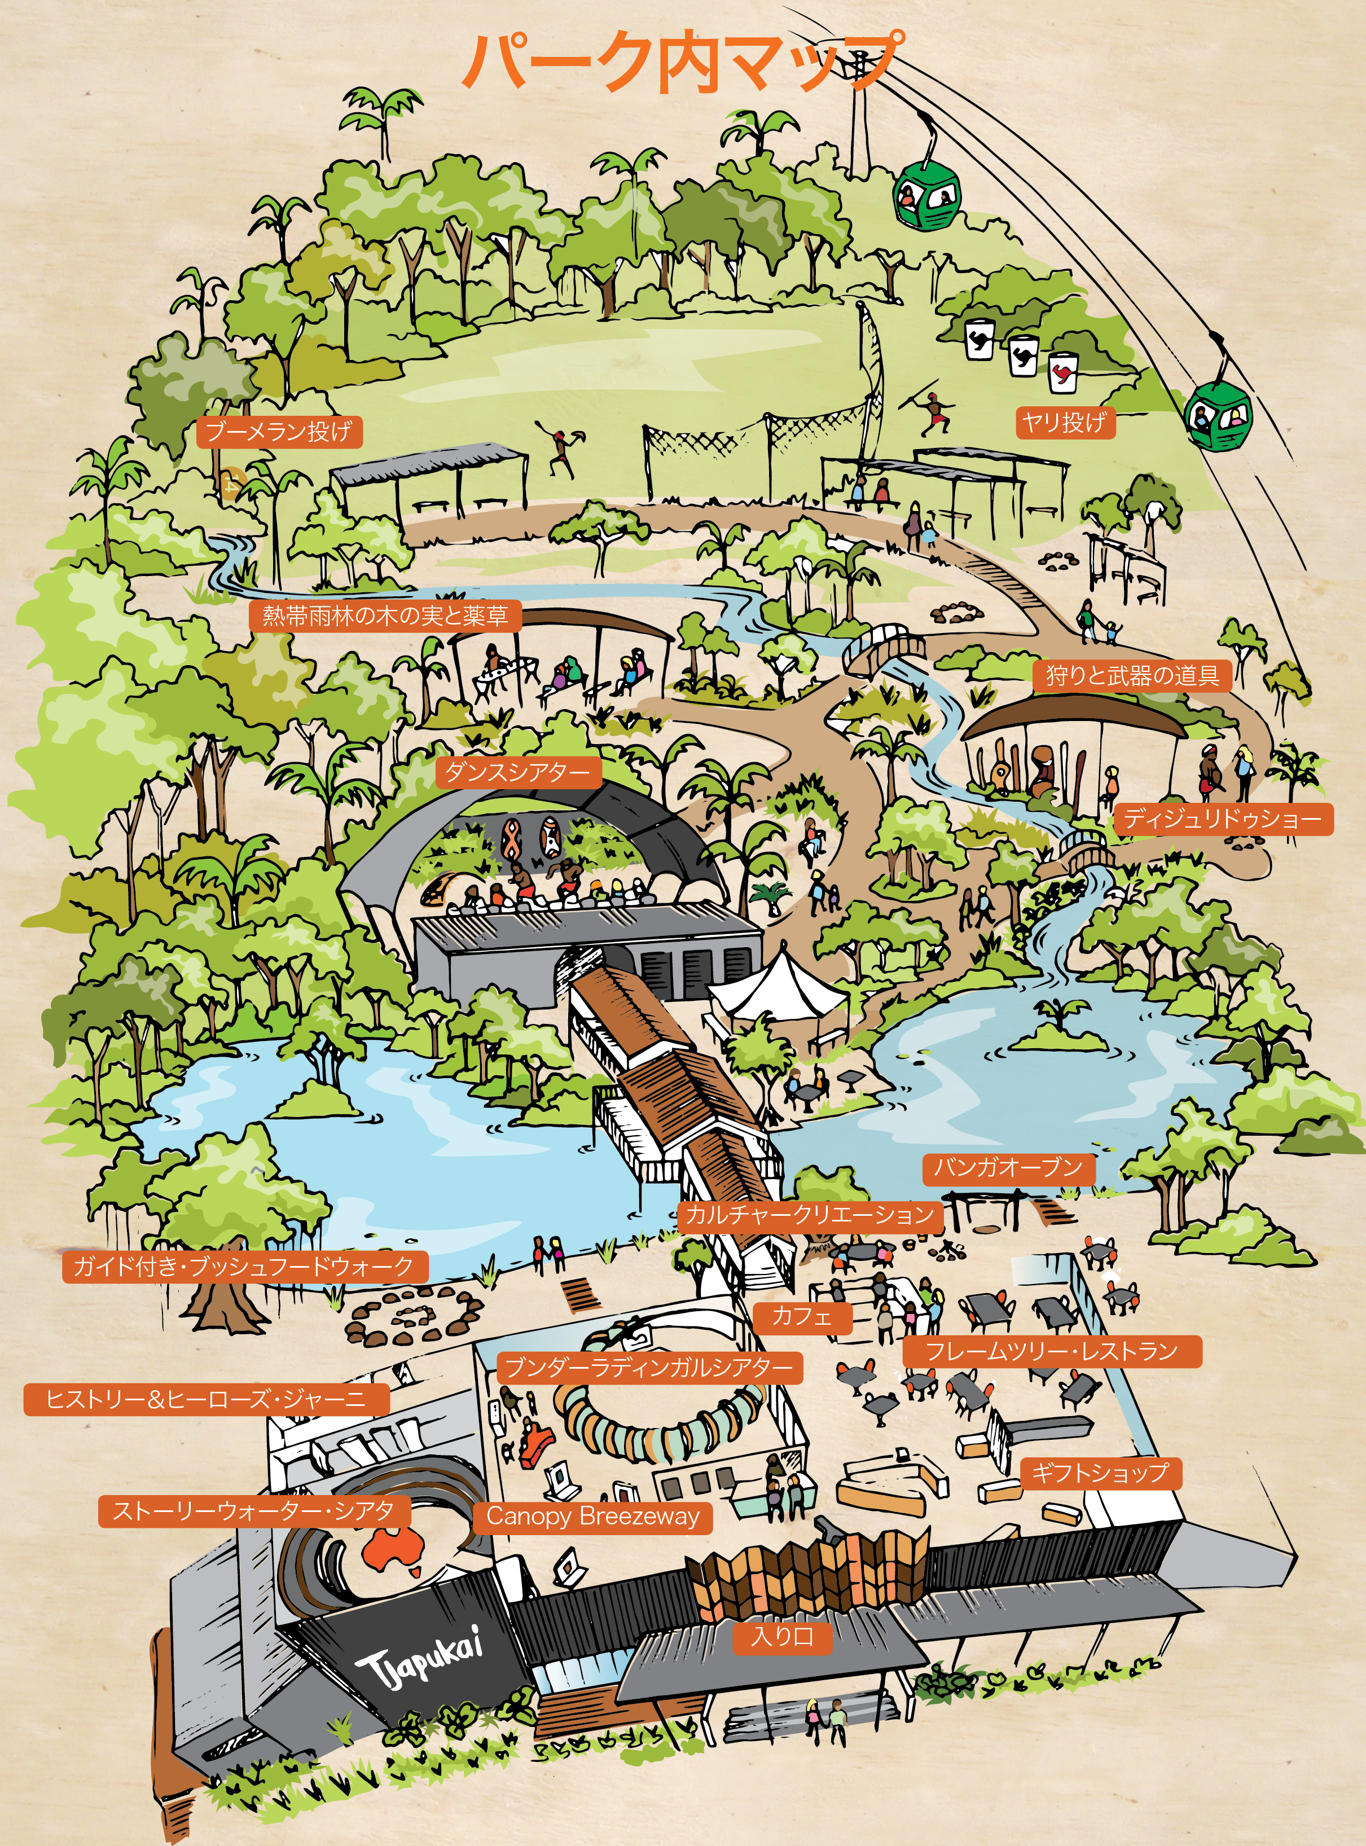 Tjapukai_Park_Map_Japanese